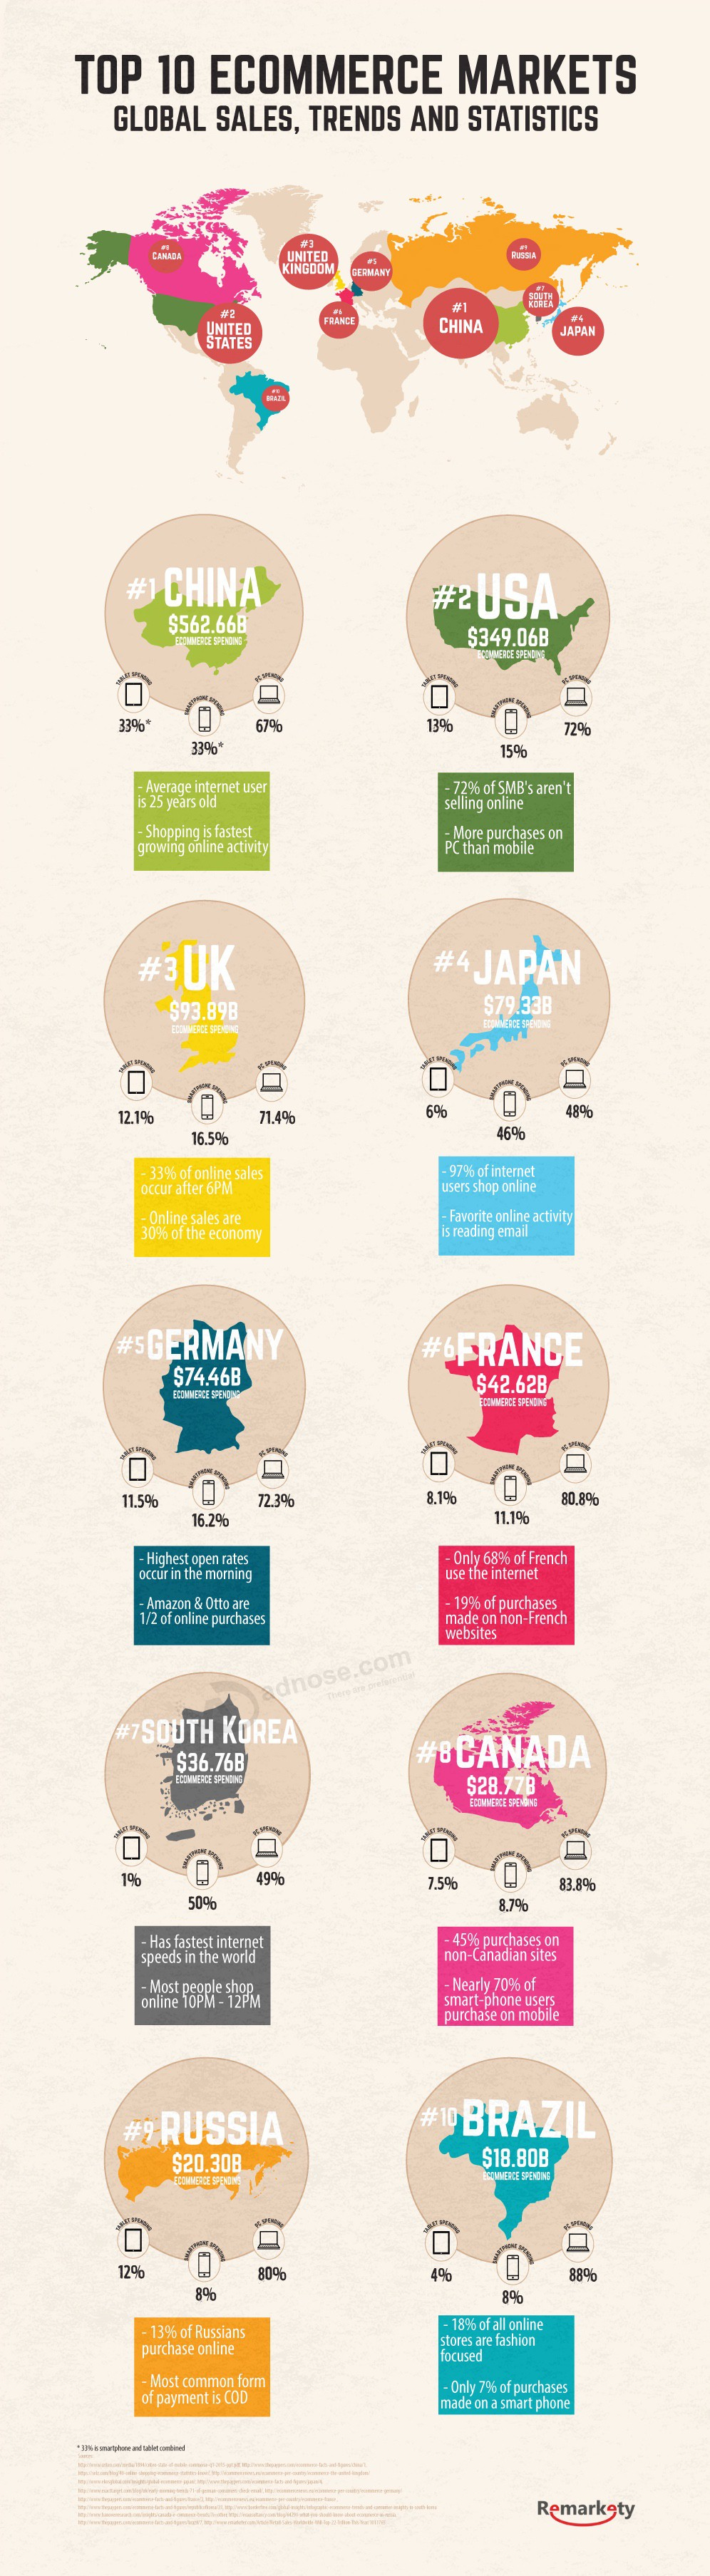 global_ecommerce_sales_trends_statistics_infographic_header